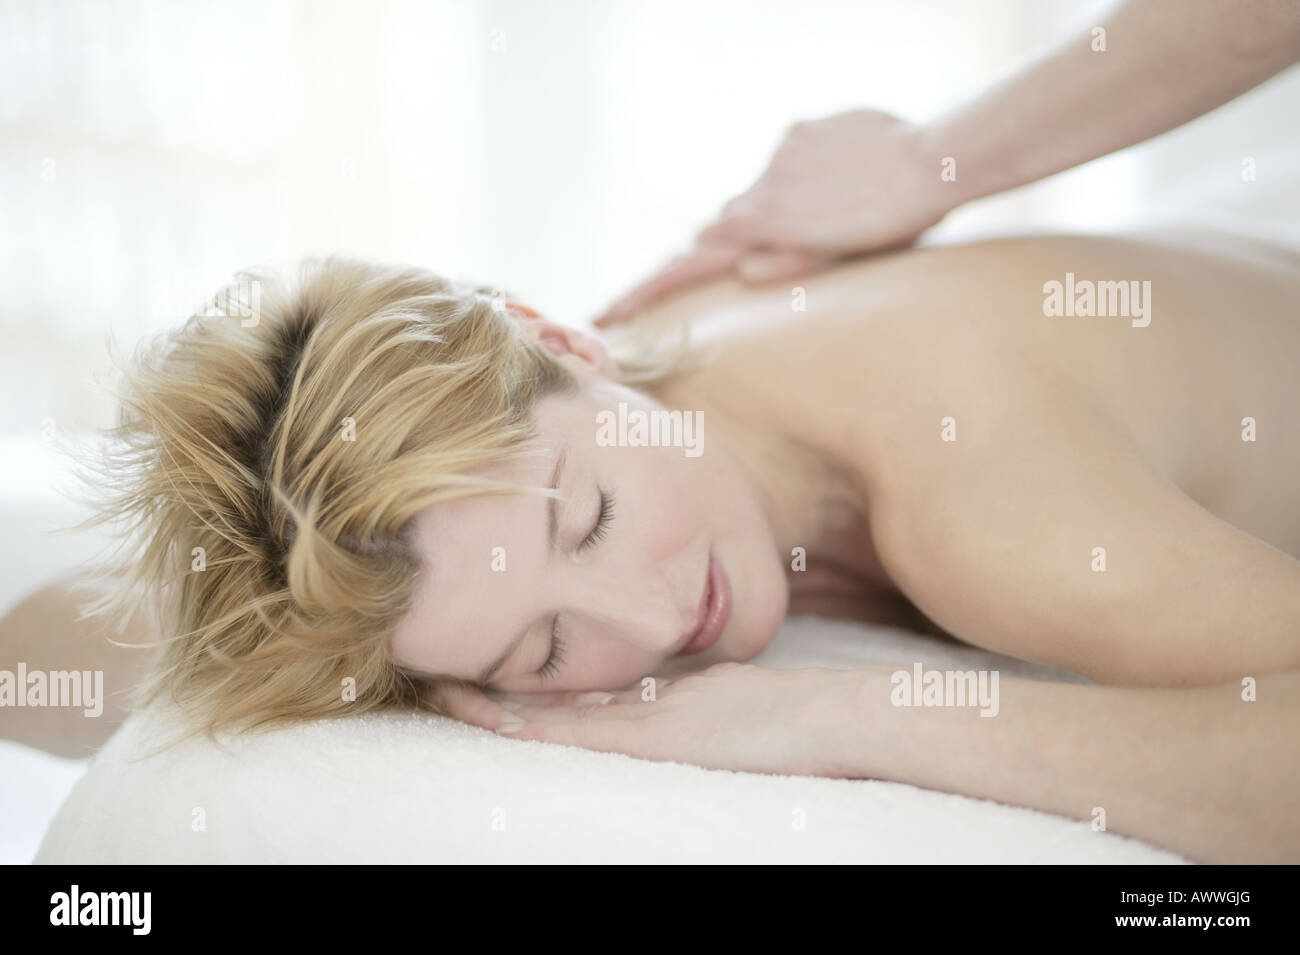 A woman in her forties having a massage Stock Photo